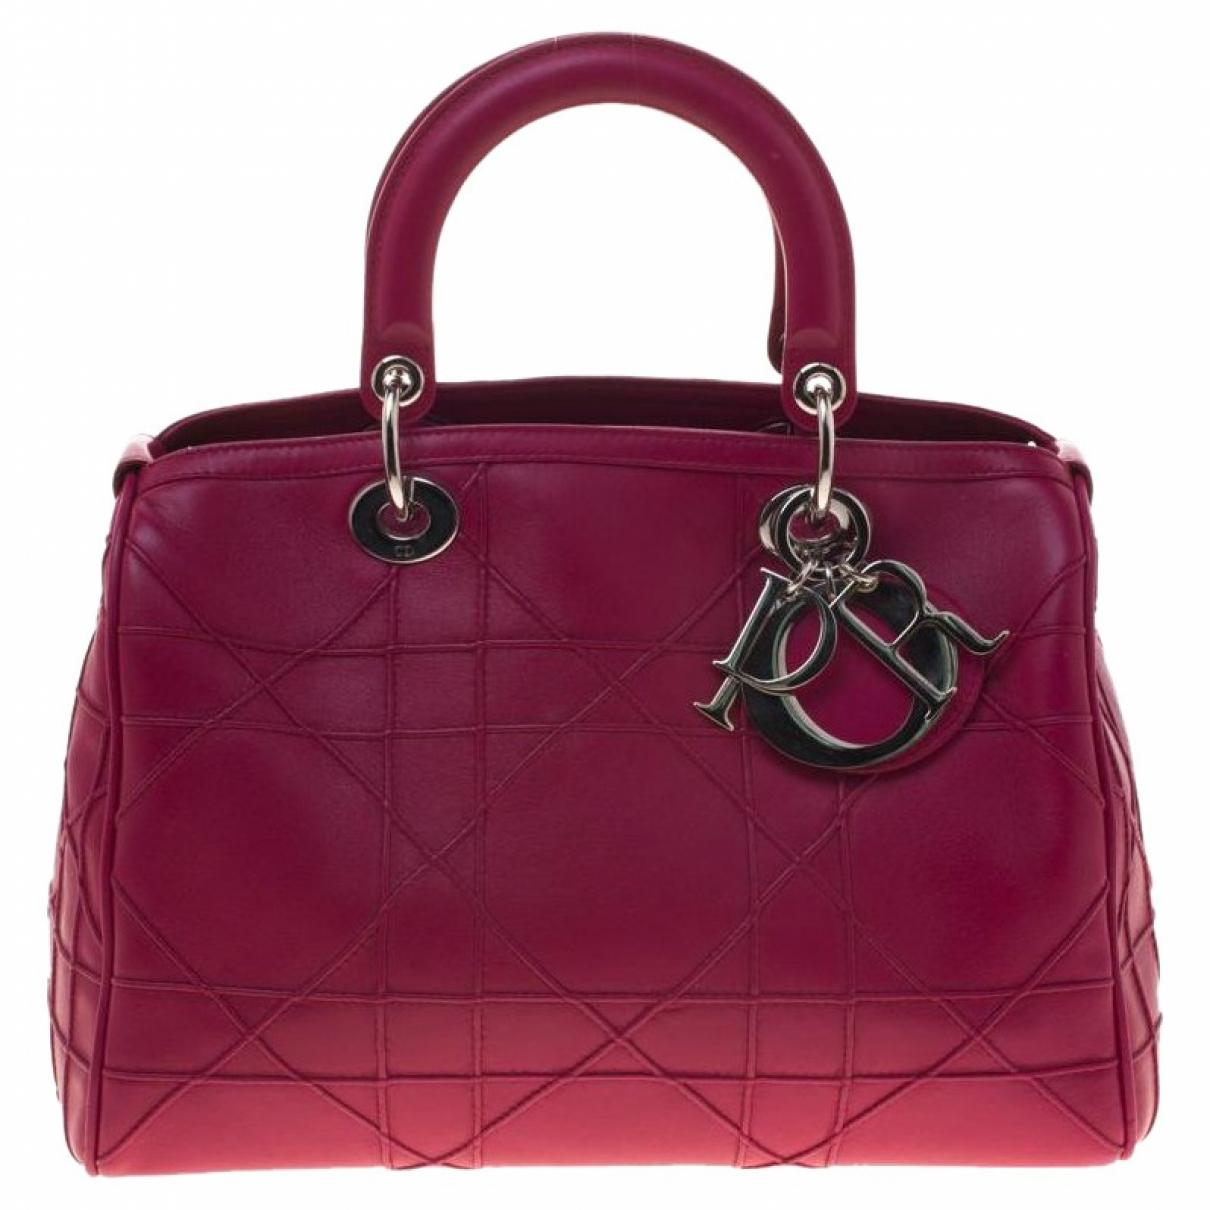 Dior. Women s Pink Granville Leather Satchel.  1 6861279b98280